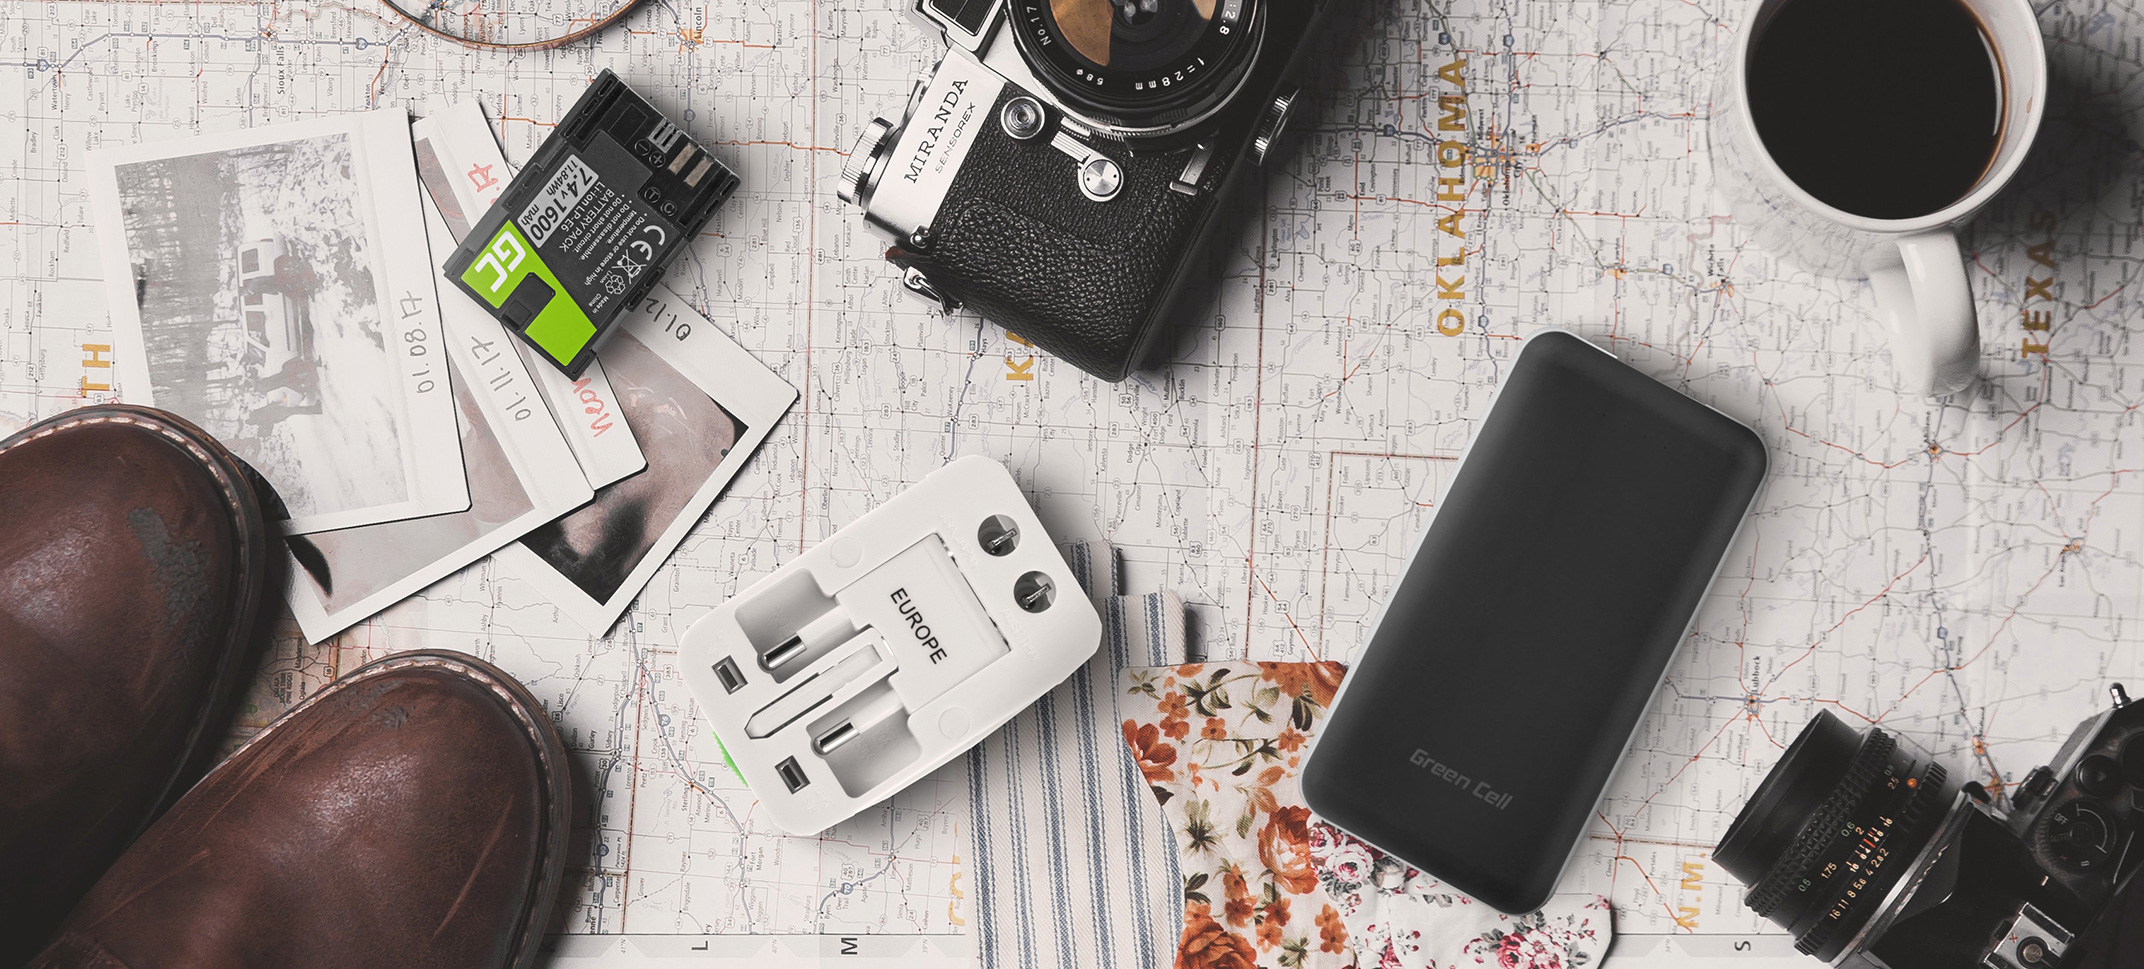 7 electronic gadgets needed for travel